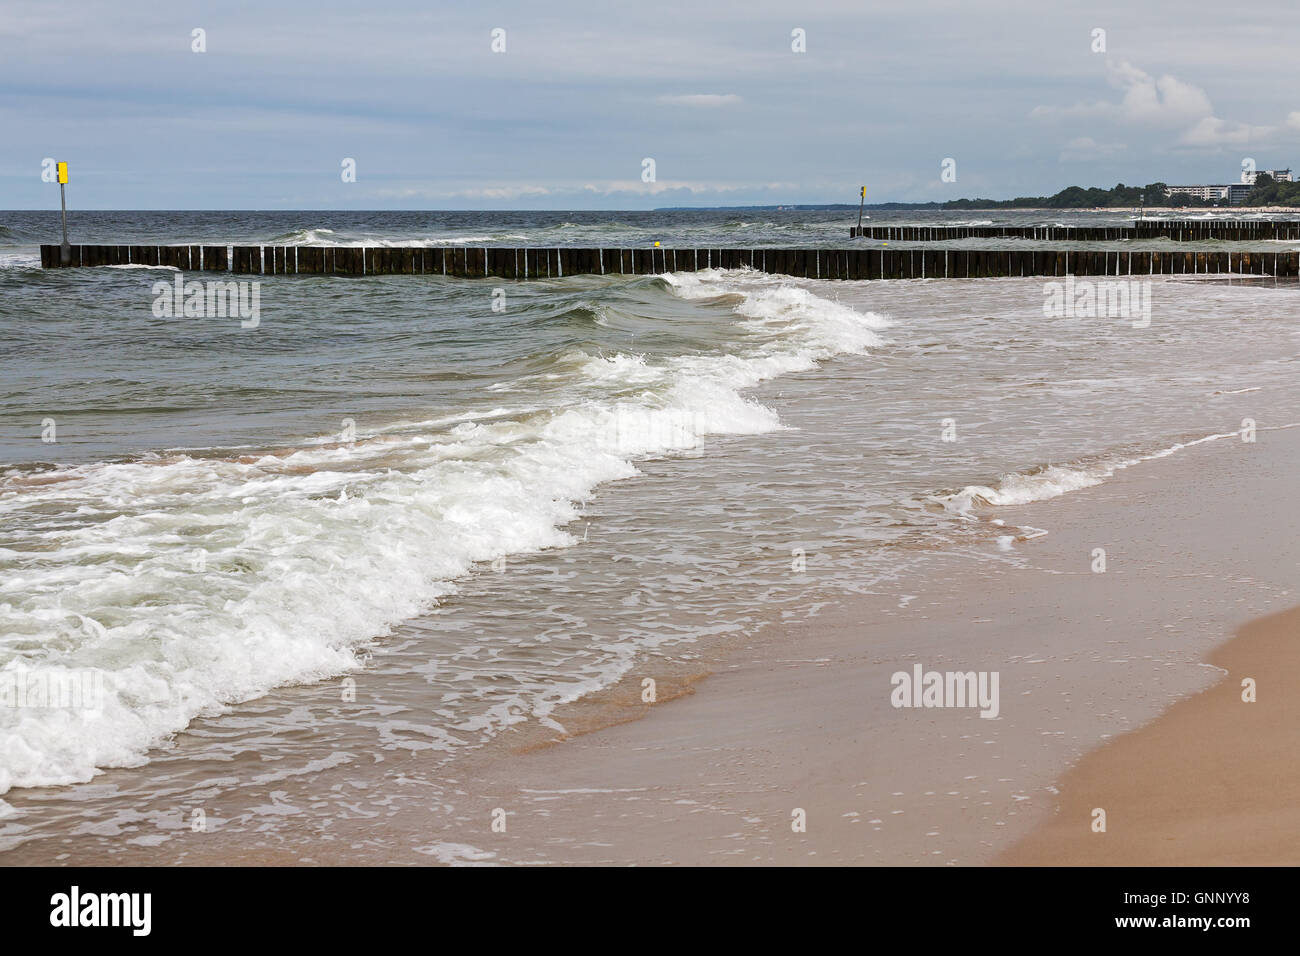 Gentle waves in the waters of the Baltic Sea - Stock Image